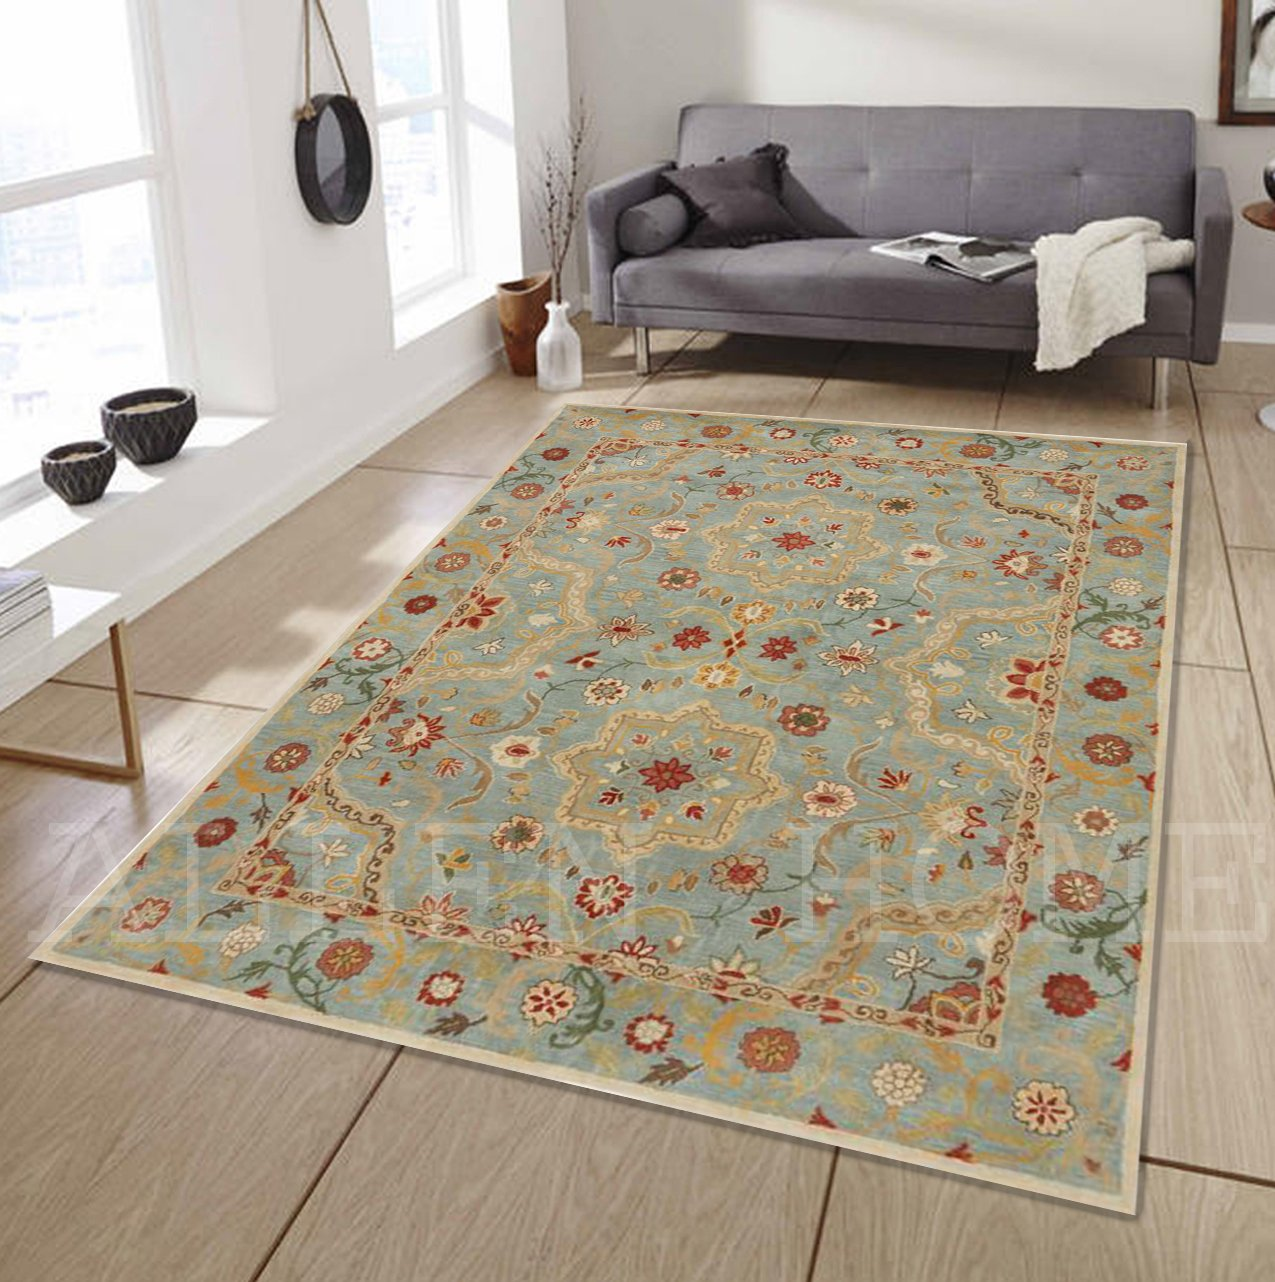 Allen Home Wool Rug 5 X8 Lisa Prcelain Blue Tufted Persian Traditional Wool Rug Carpet